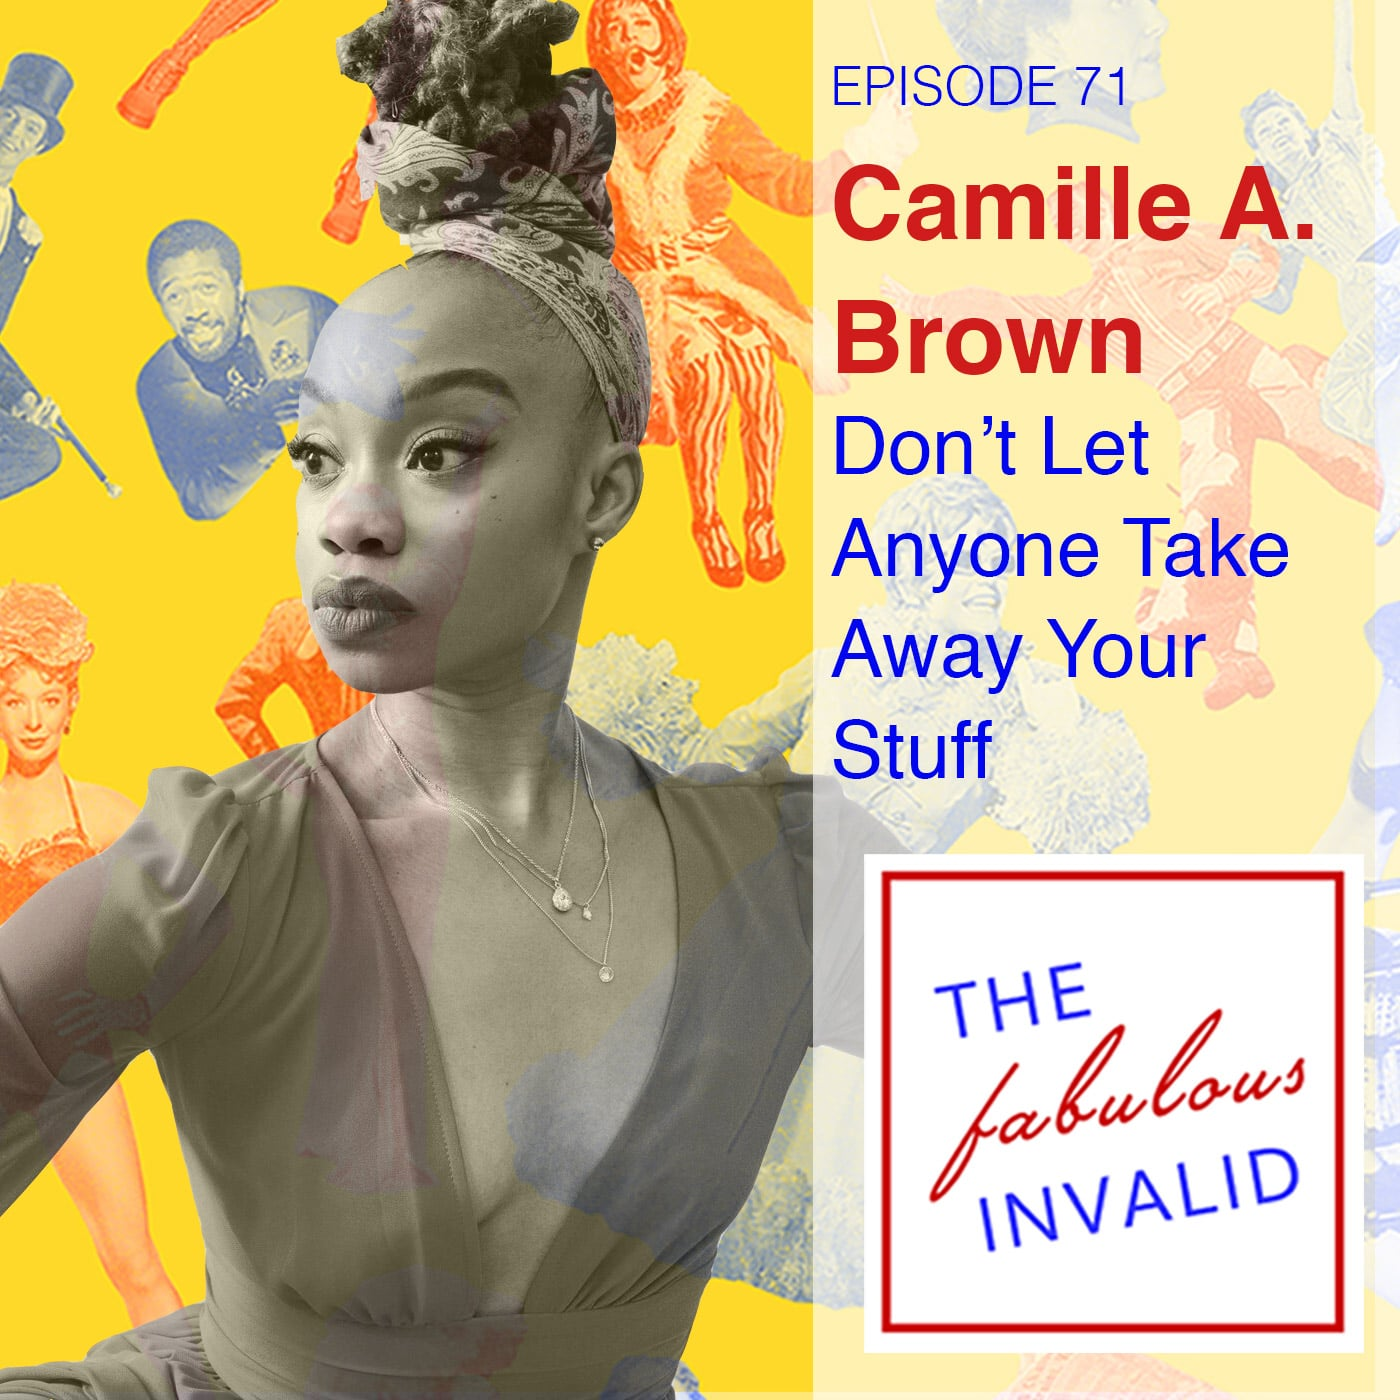 The Fabulous Invalid Episode 71 Camille Brown